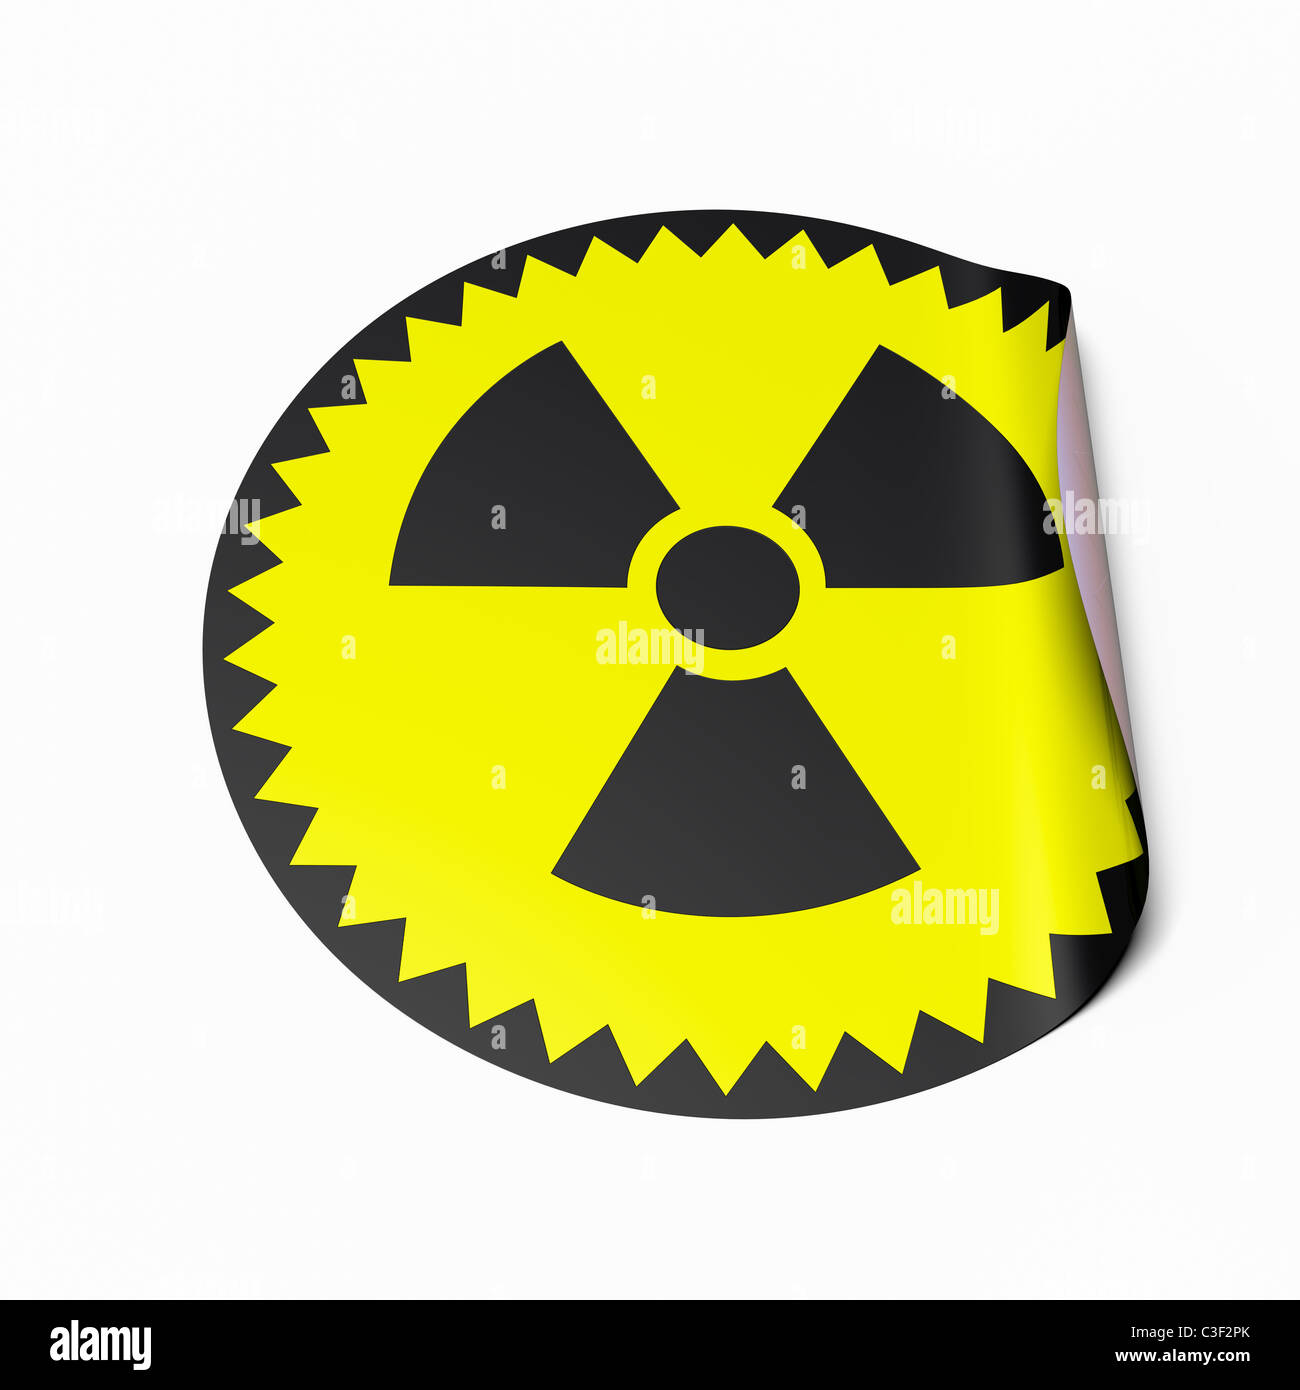 High resolution image of a sticker with radioactive symbol. Conceptual image for nuclear power or nuclear risk. - Stock Image